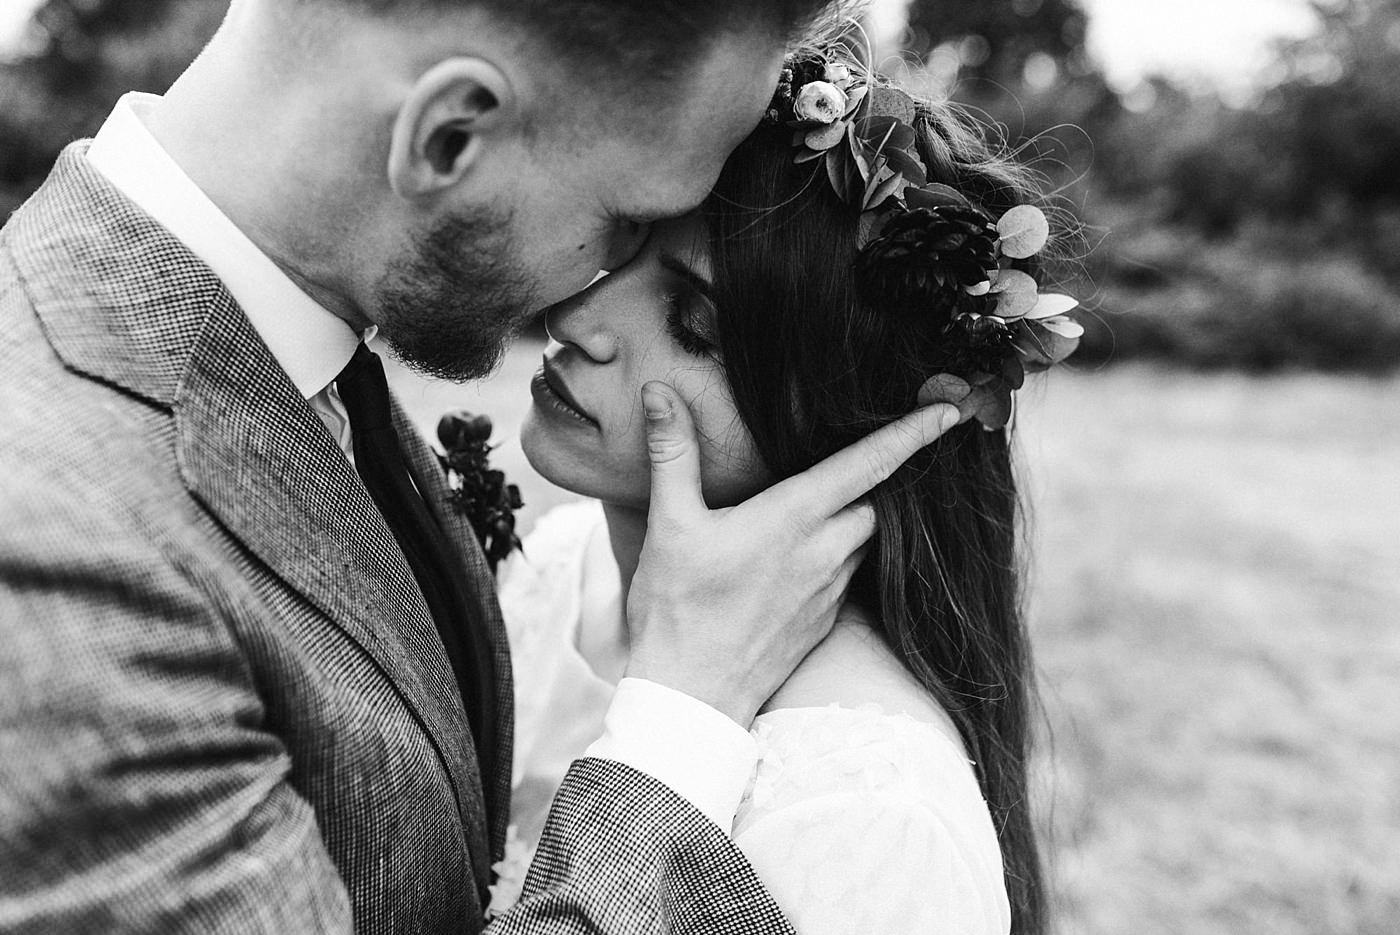 urban-elopement-wedding-220 Merve & Nils emotionales Elopement - Wedding Wesel & Schottlandurban elopement wedding 220 1